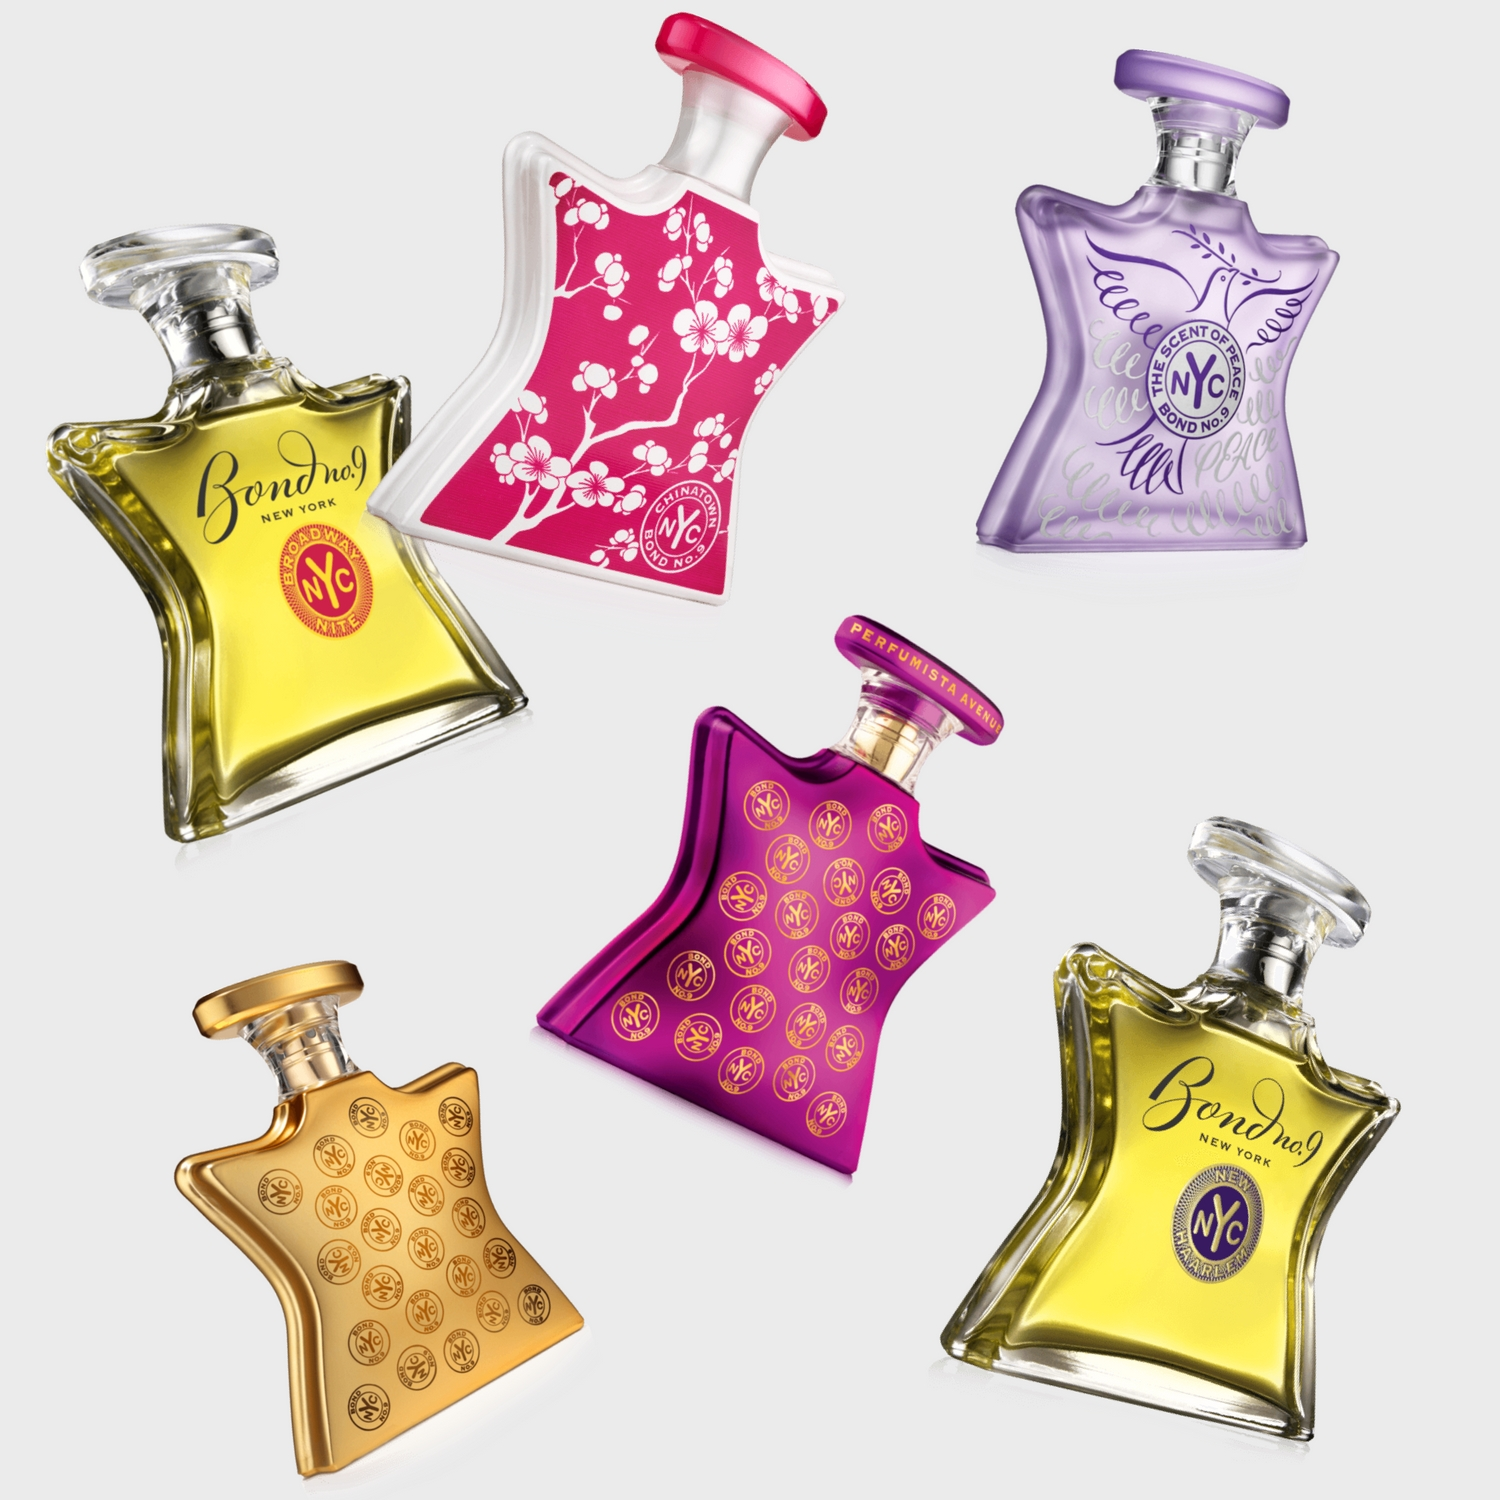 Top 10 Best Bond No 9 Perfume  | Bond No 9 Fragrances Review